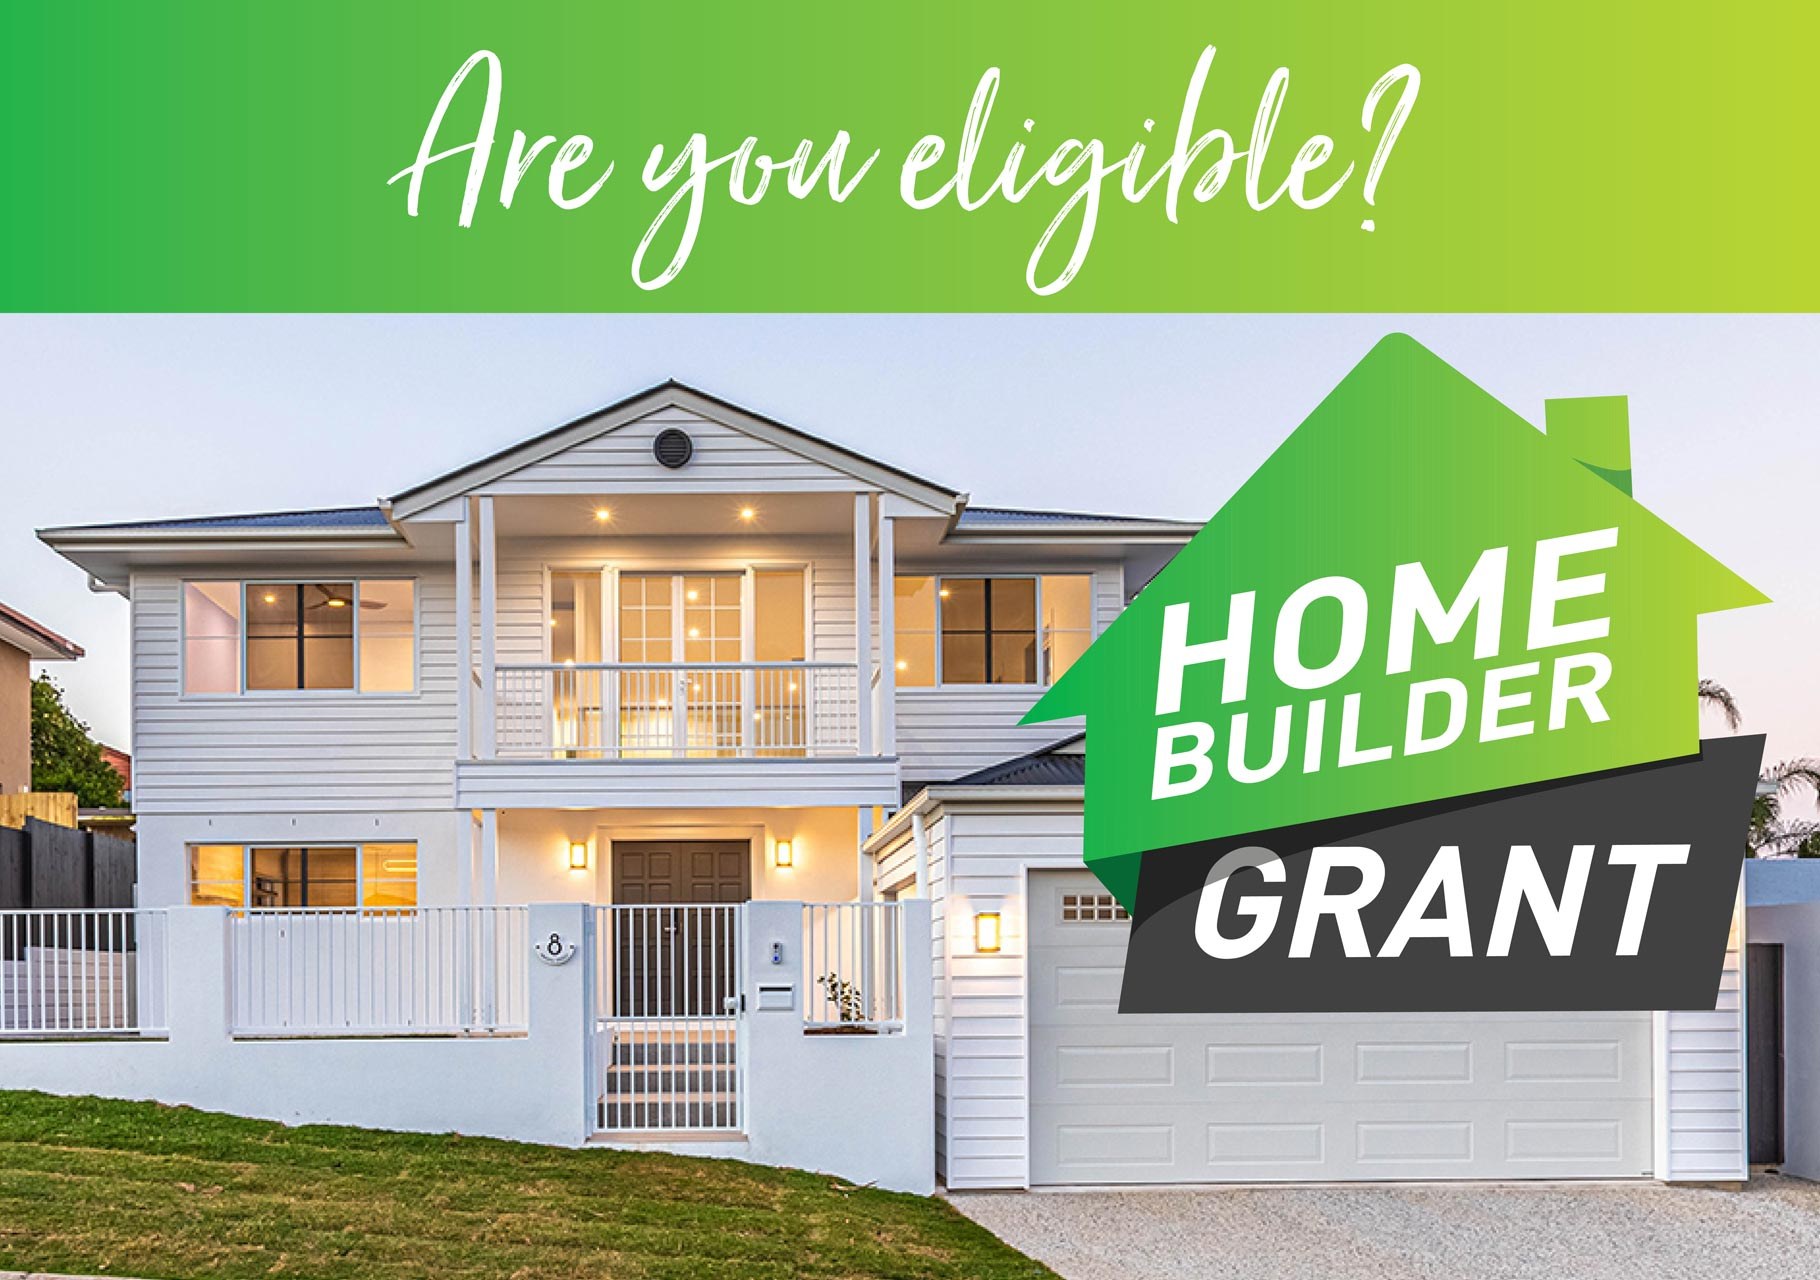 01-homebuilder-grant-dec-2020-mobile-banner-1820x1280